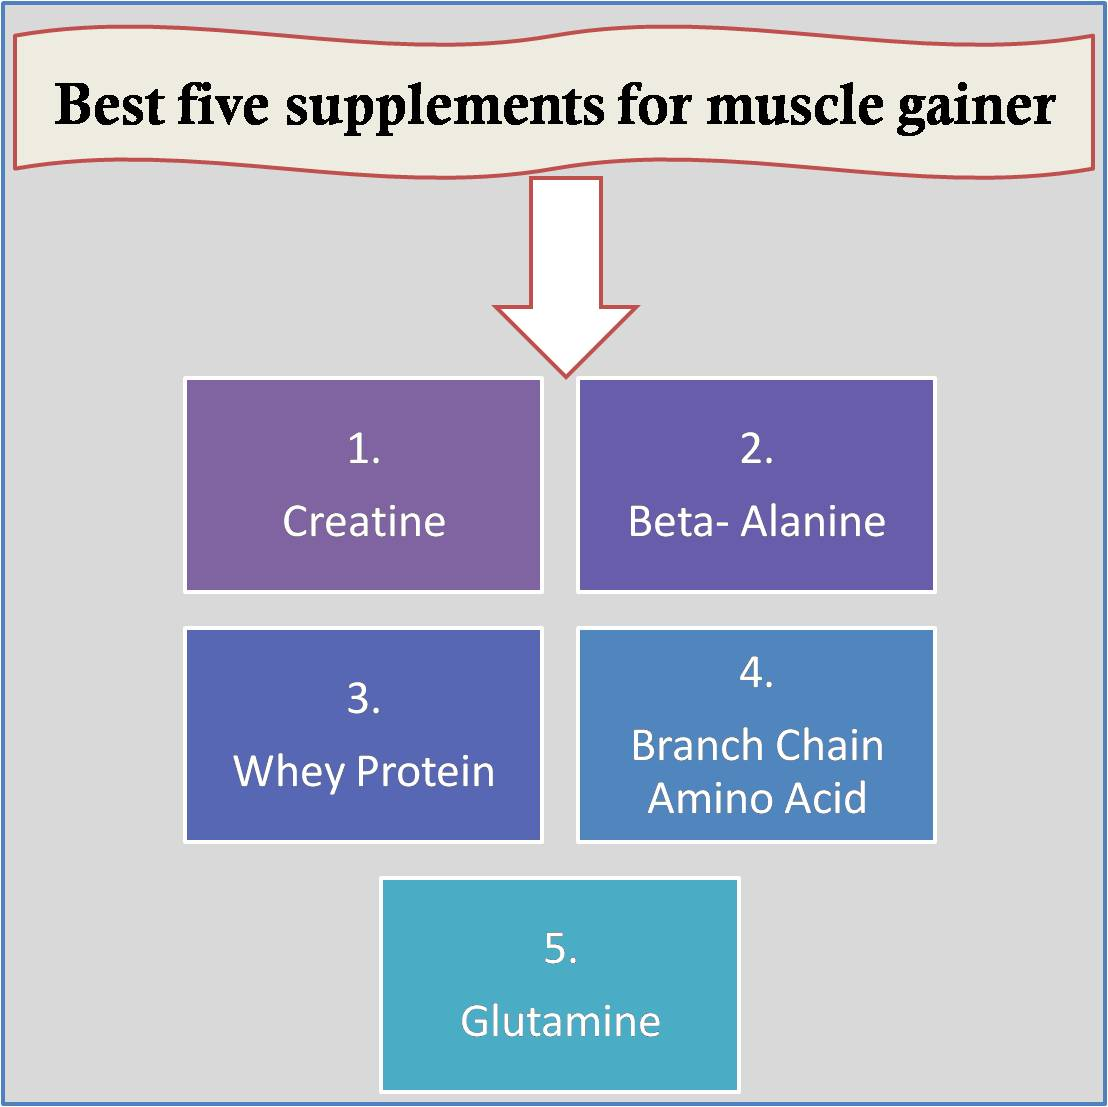 Best five supplements for muscle gainer